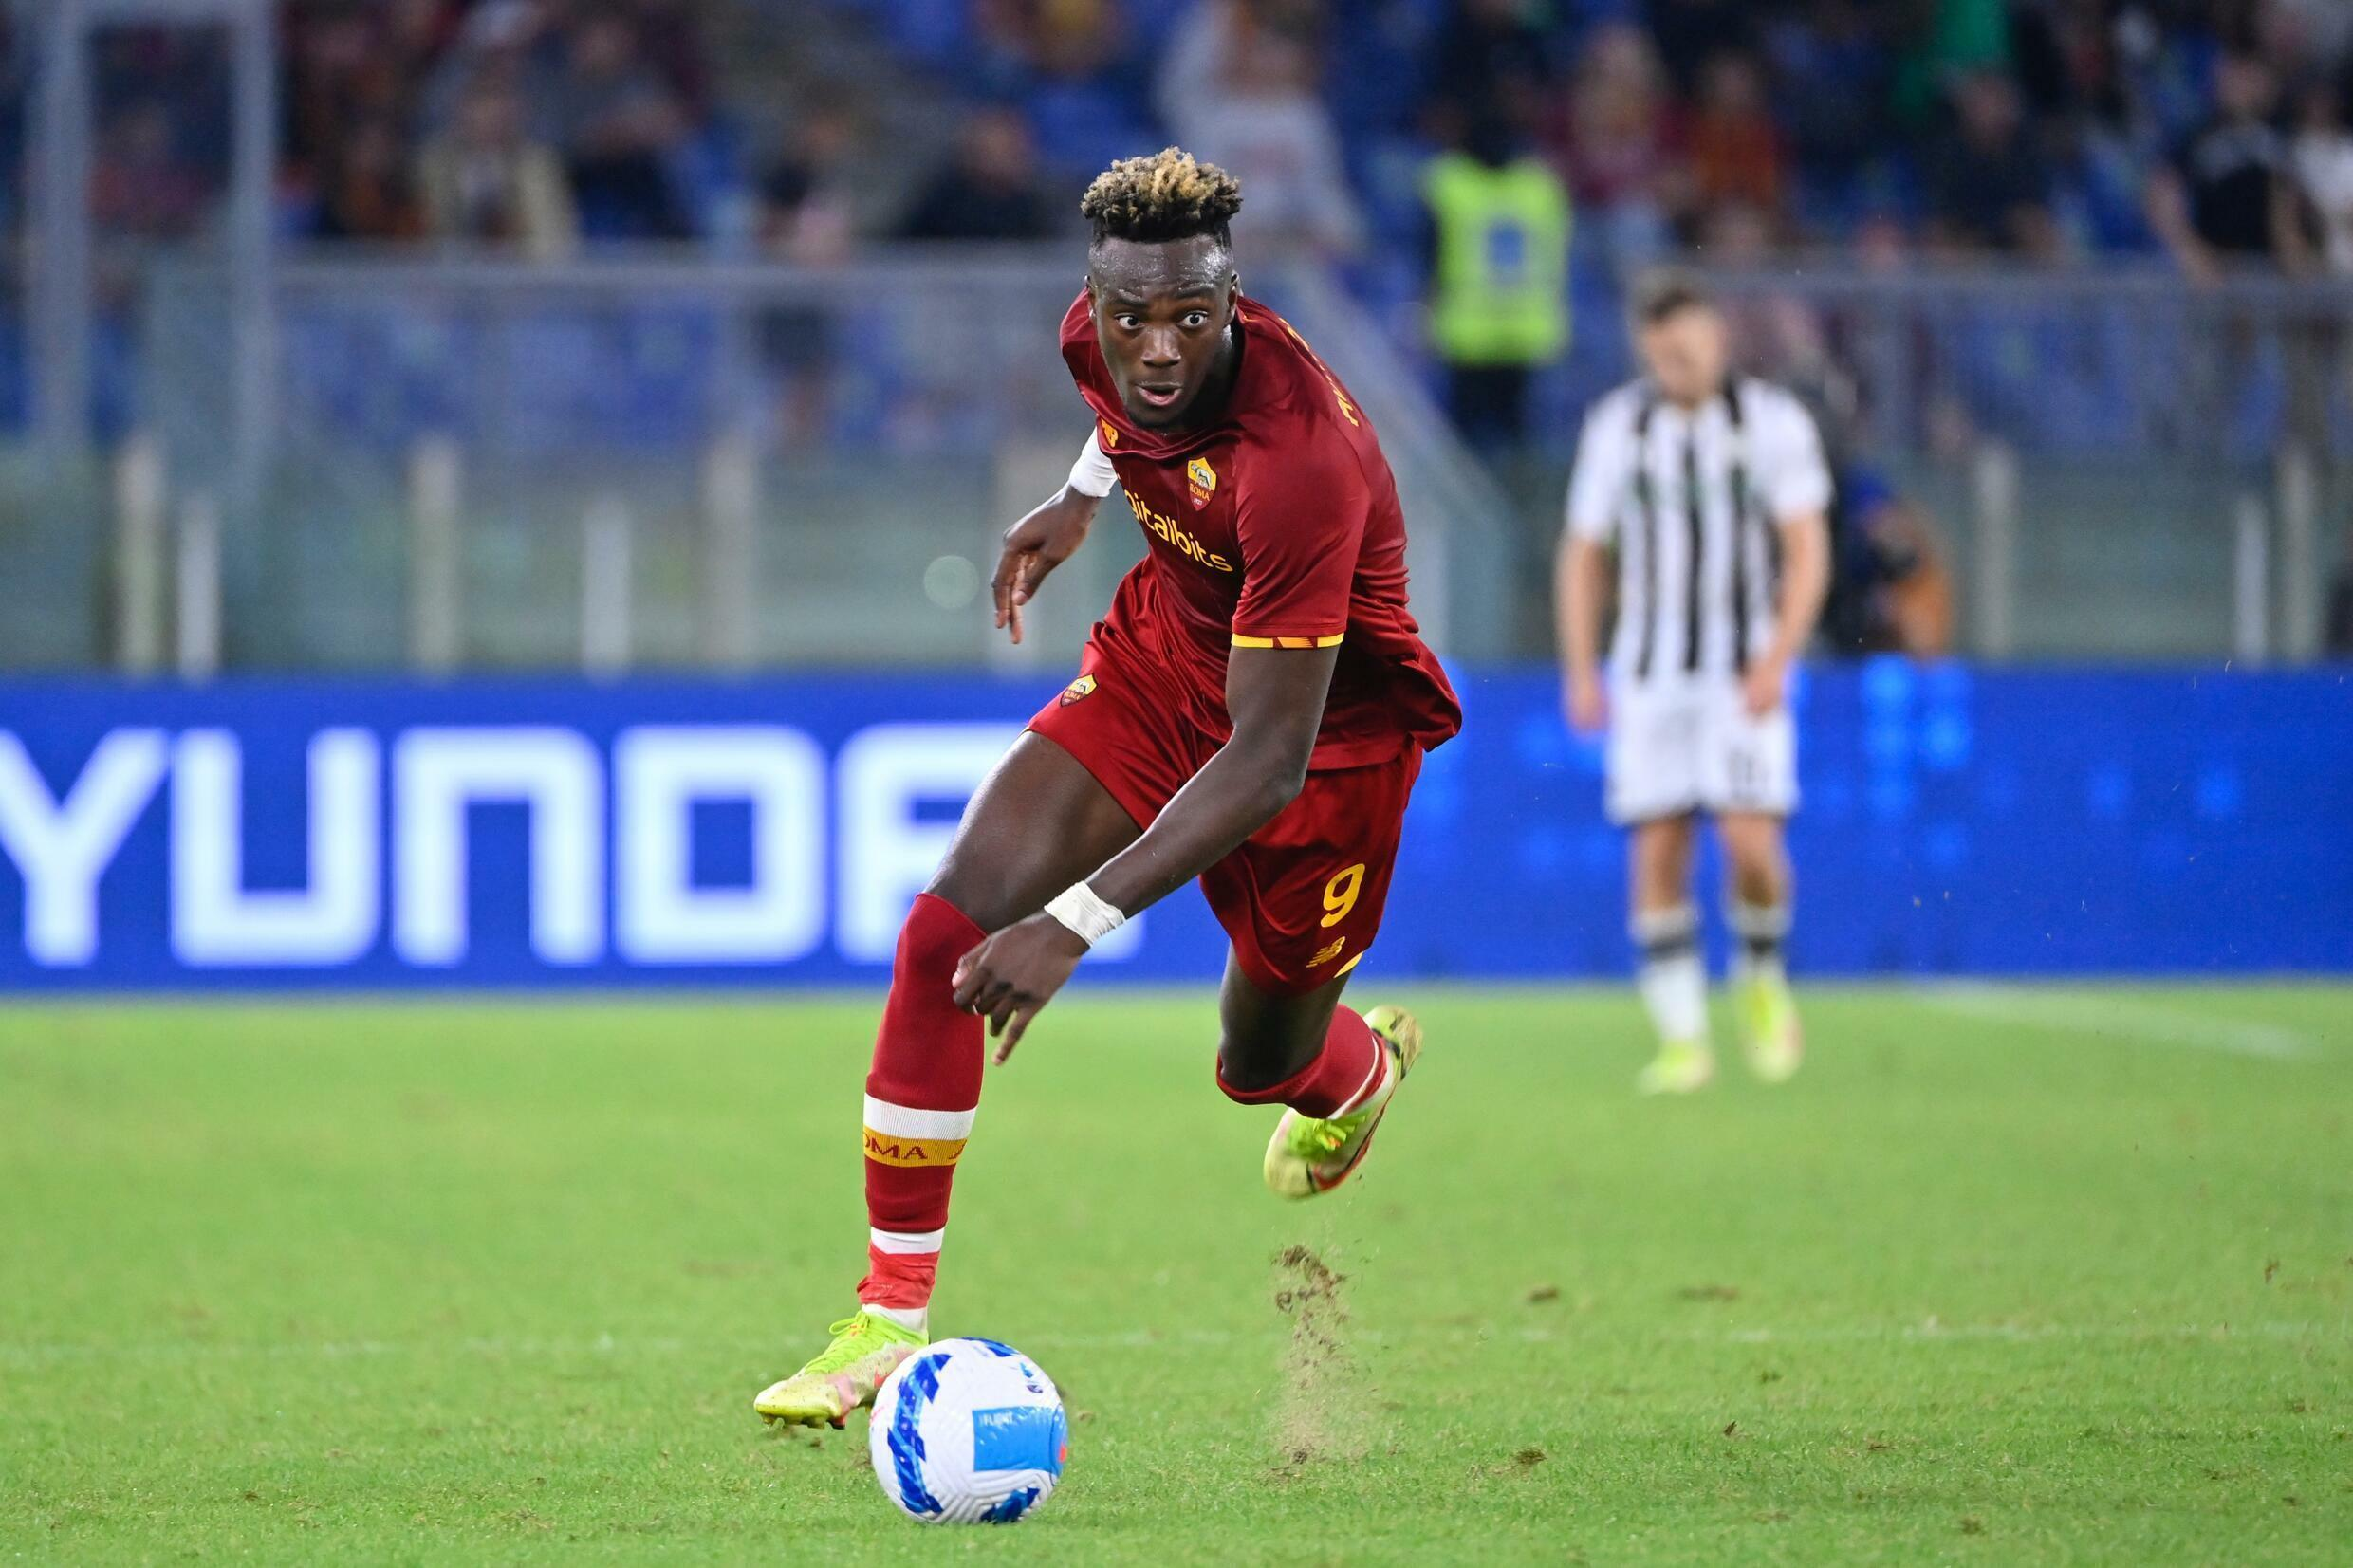 L'attaccante inglese dell'AS Roma Tommy Abraham Udinese a Roma il 23 settembre 2021